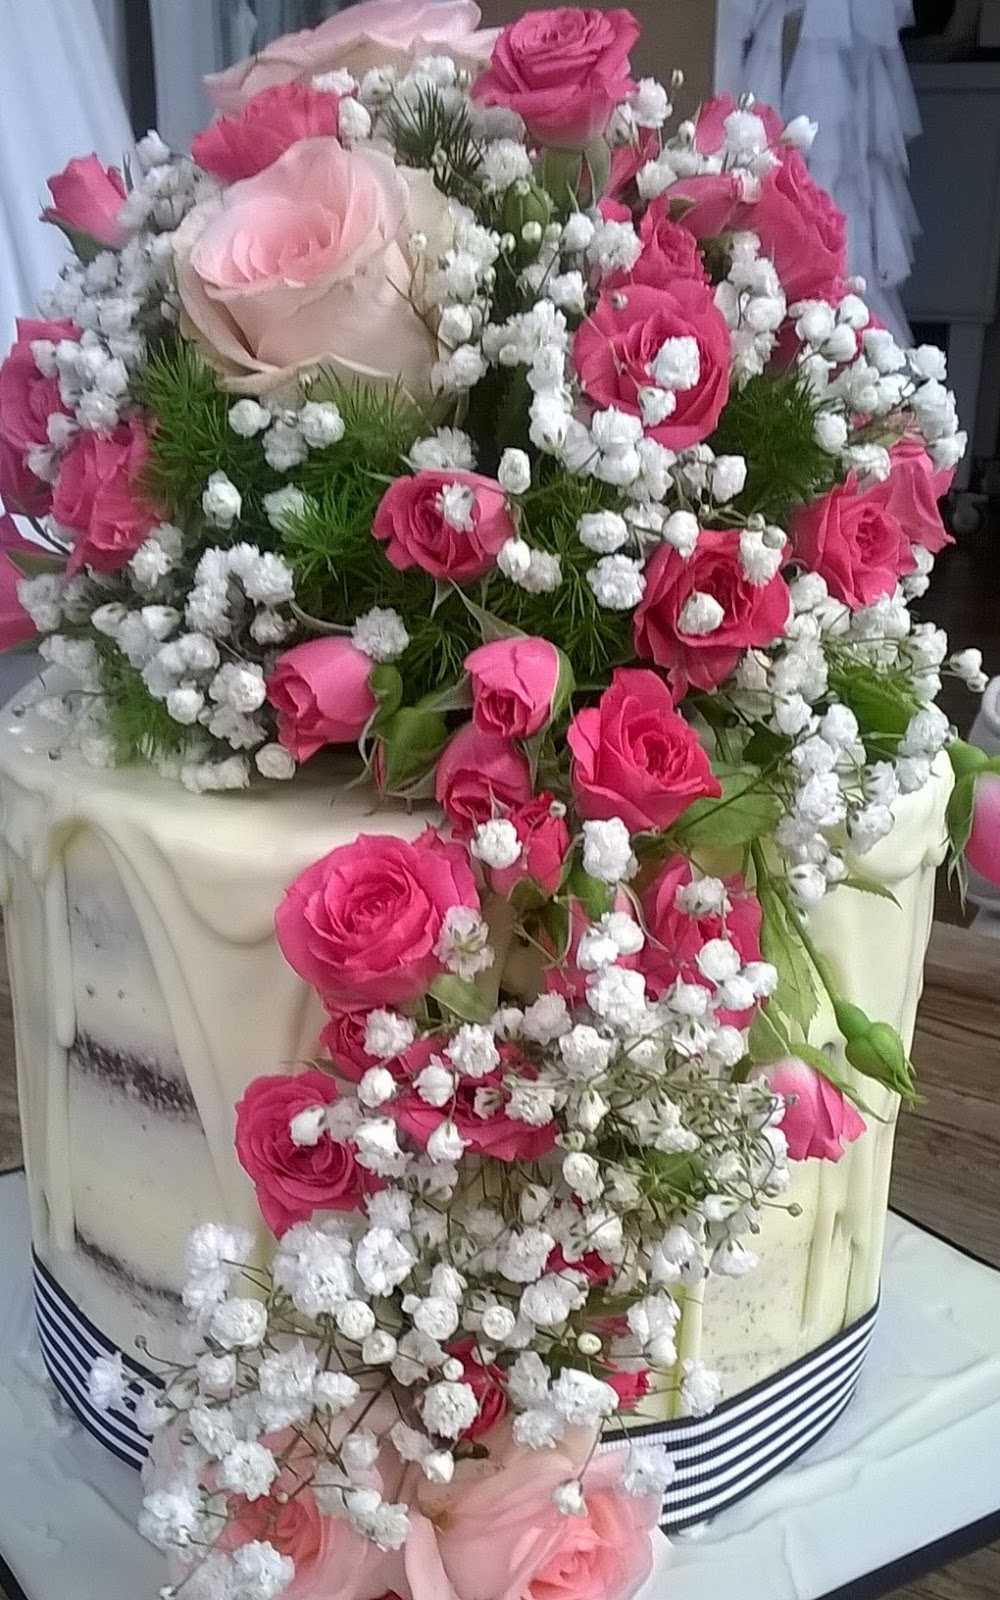 Enchanting Beautiful Flower Birthday Cakes Ideas Wedding and